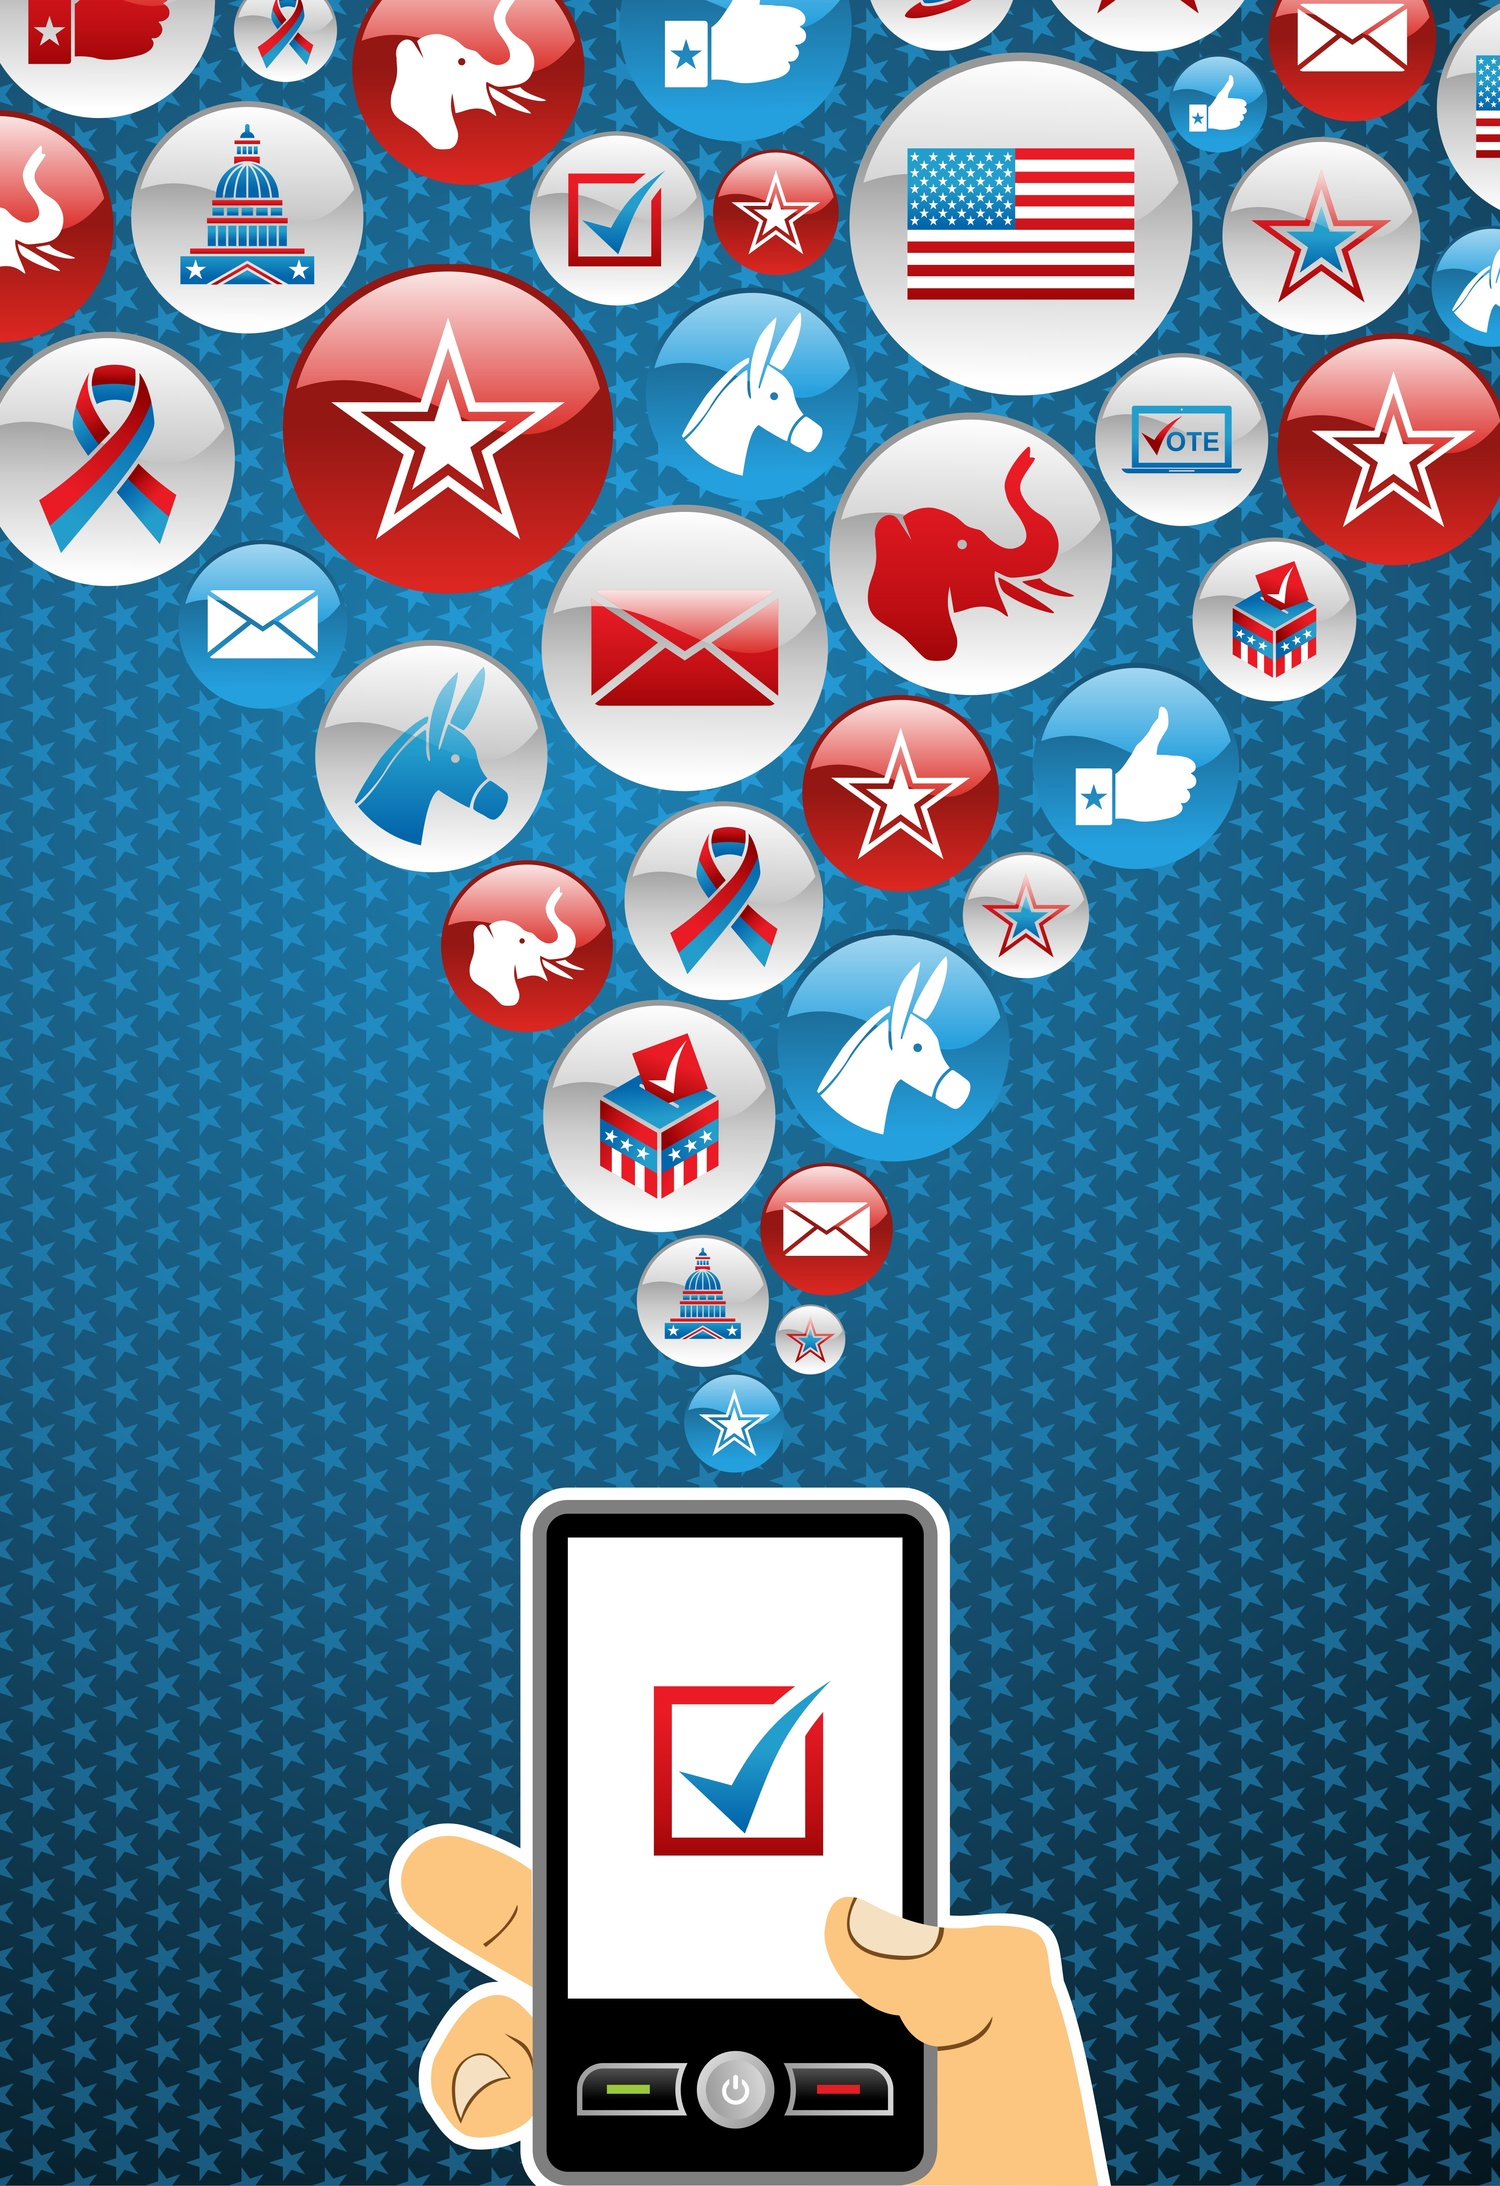 big data and the 2016 presidential campaigns